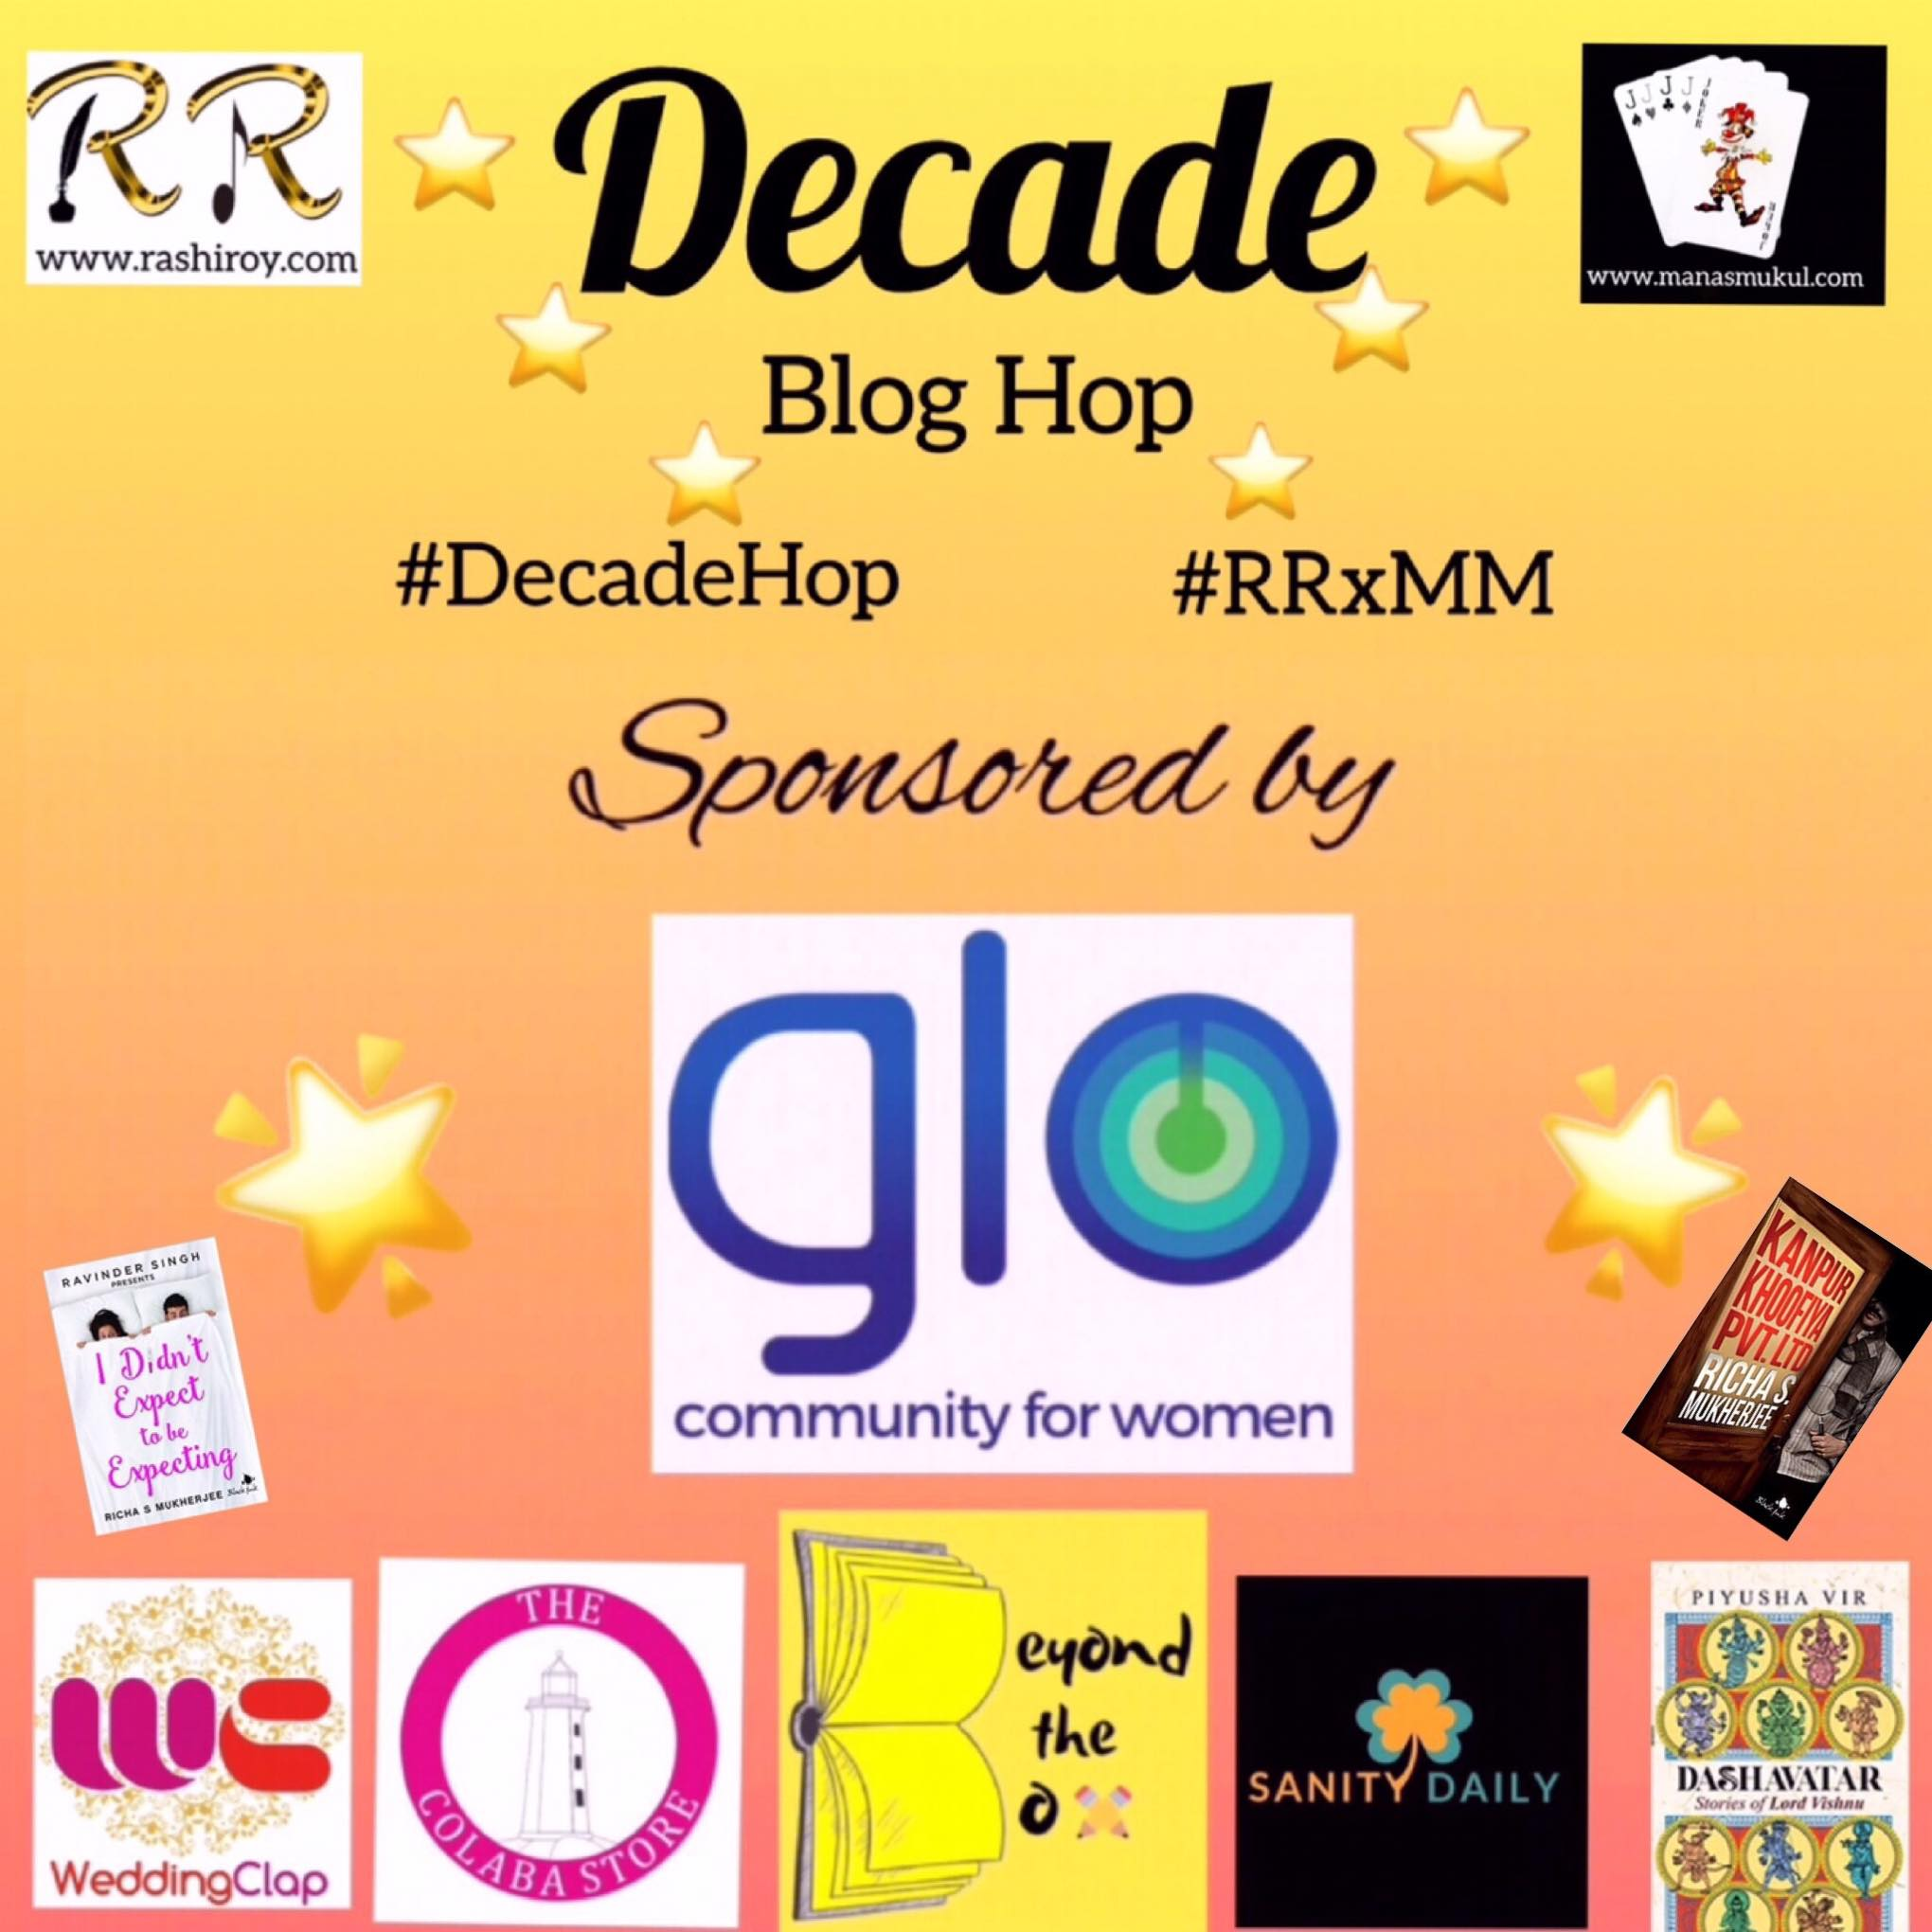 Decade, BlogHop, Contest